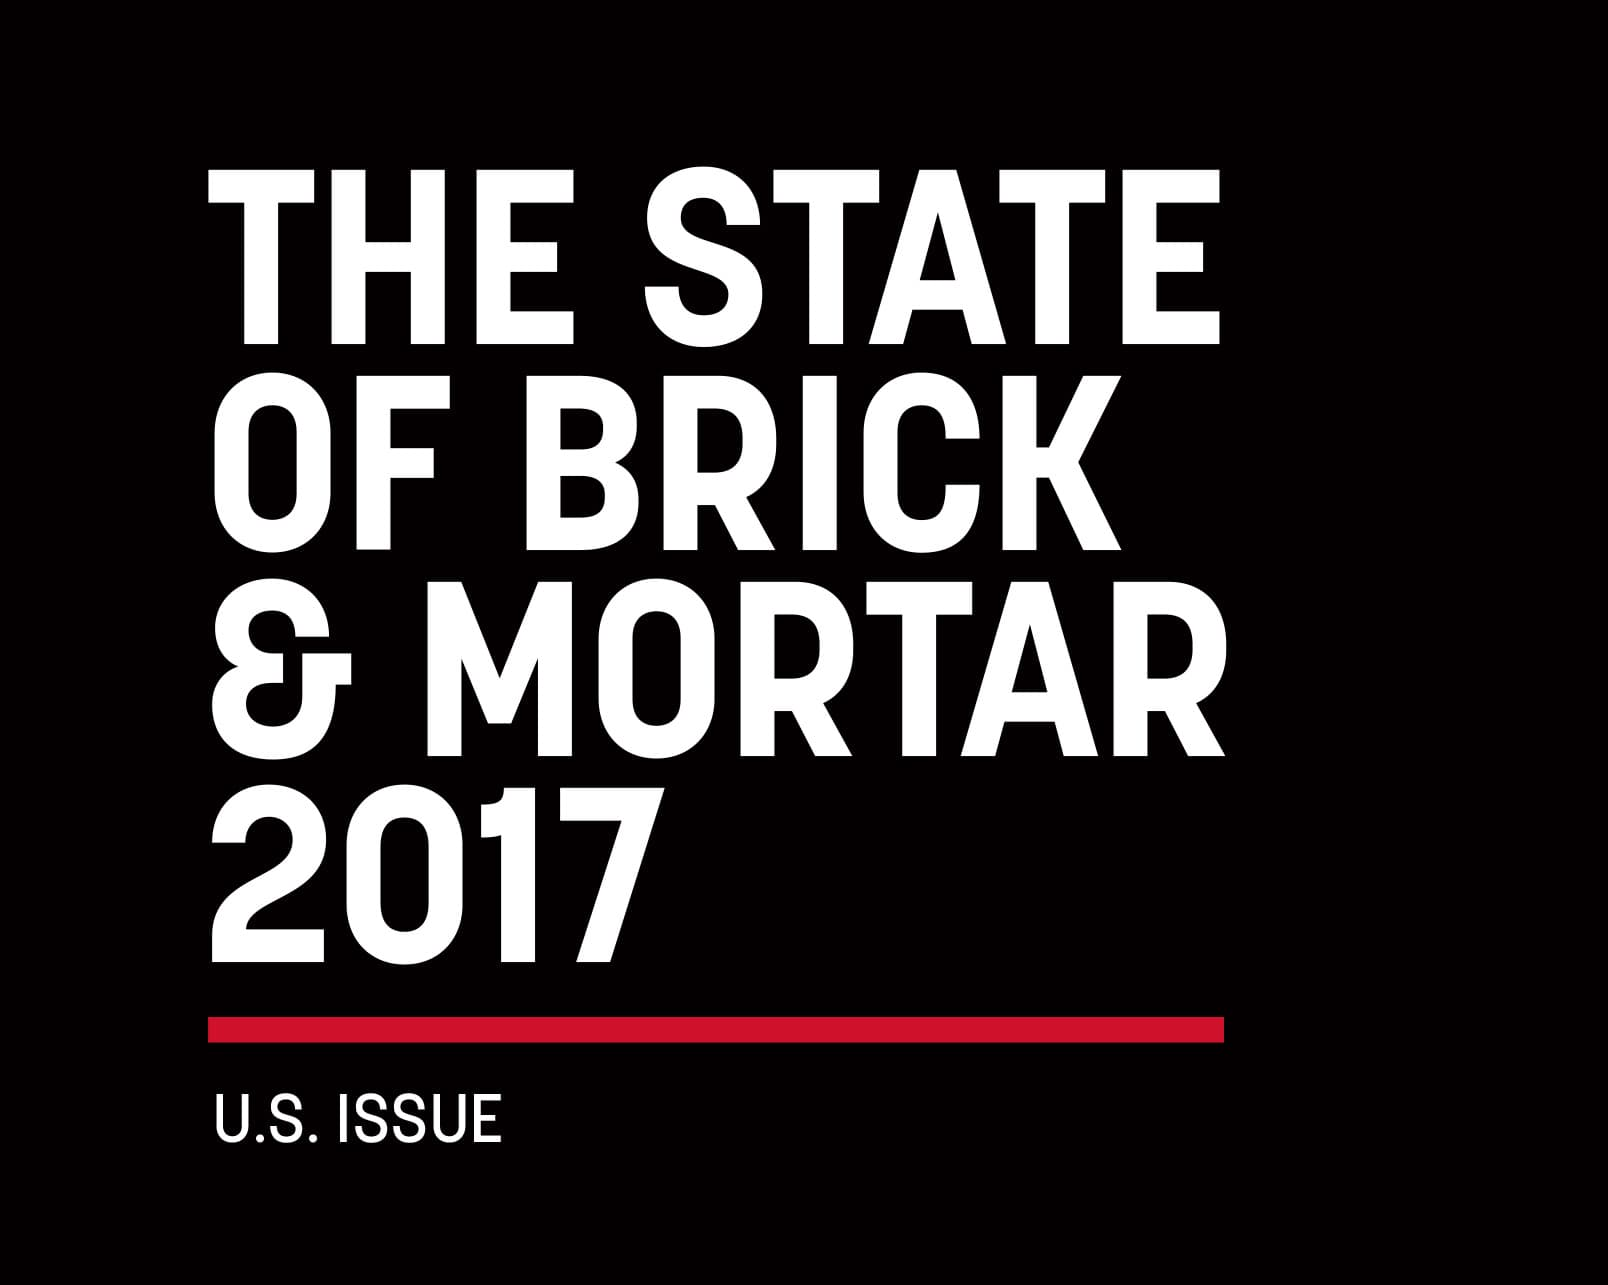 The State of Brick & Mortar 2017